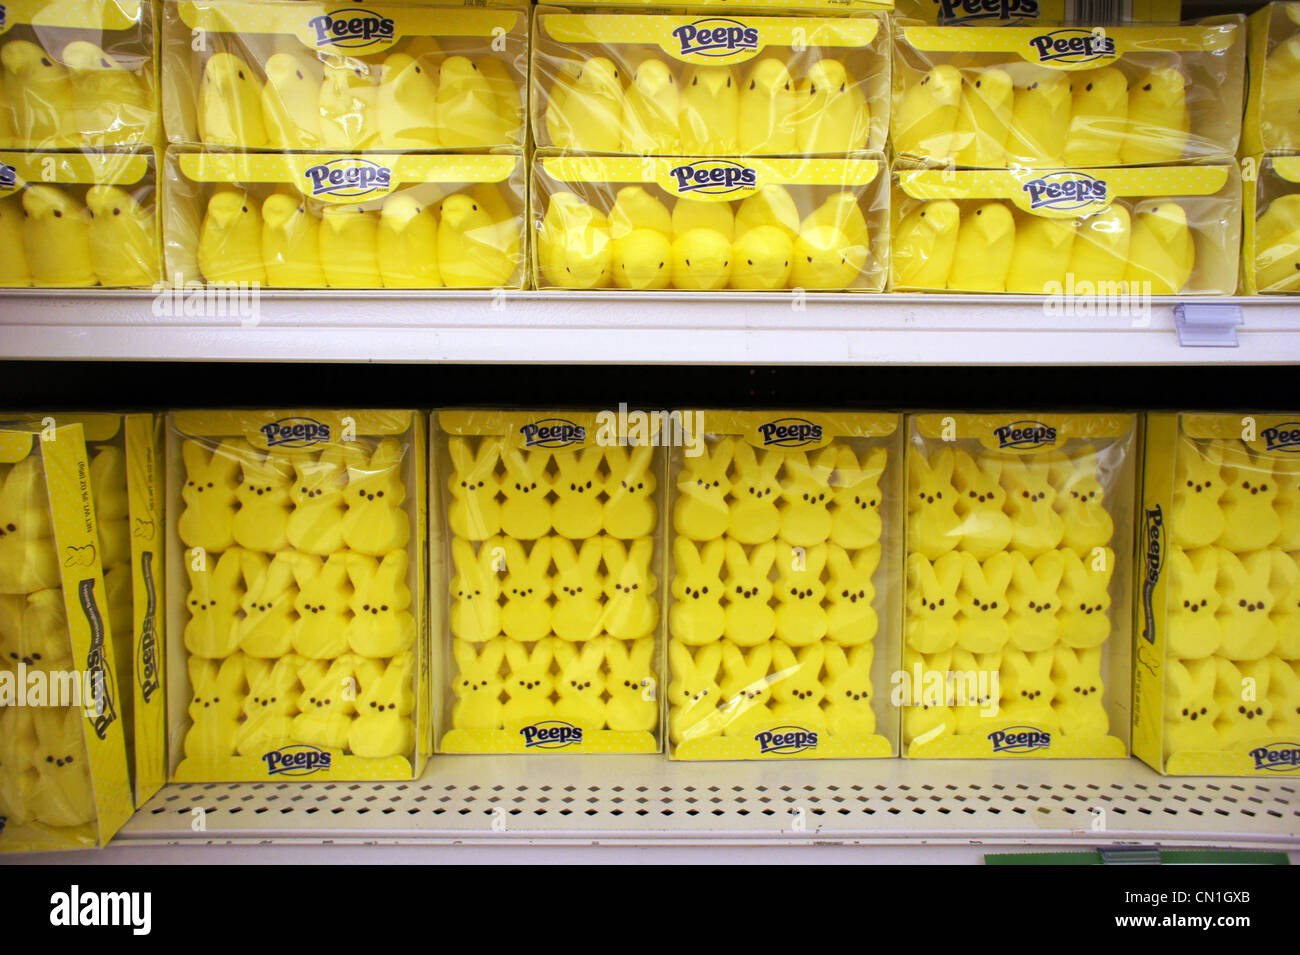 easter peeps marshmallow candy for sale on grocery store shelves stock photo royalty free image. Black Bedroom Furniture Sets. Home Design Ideas